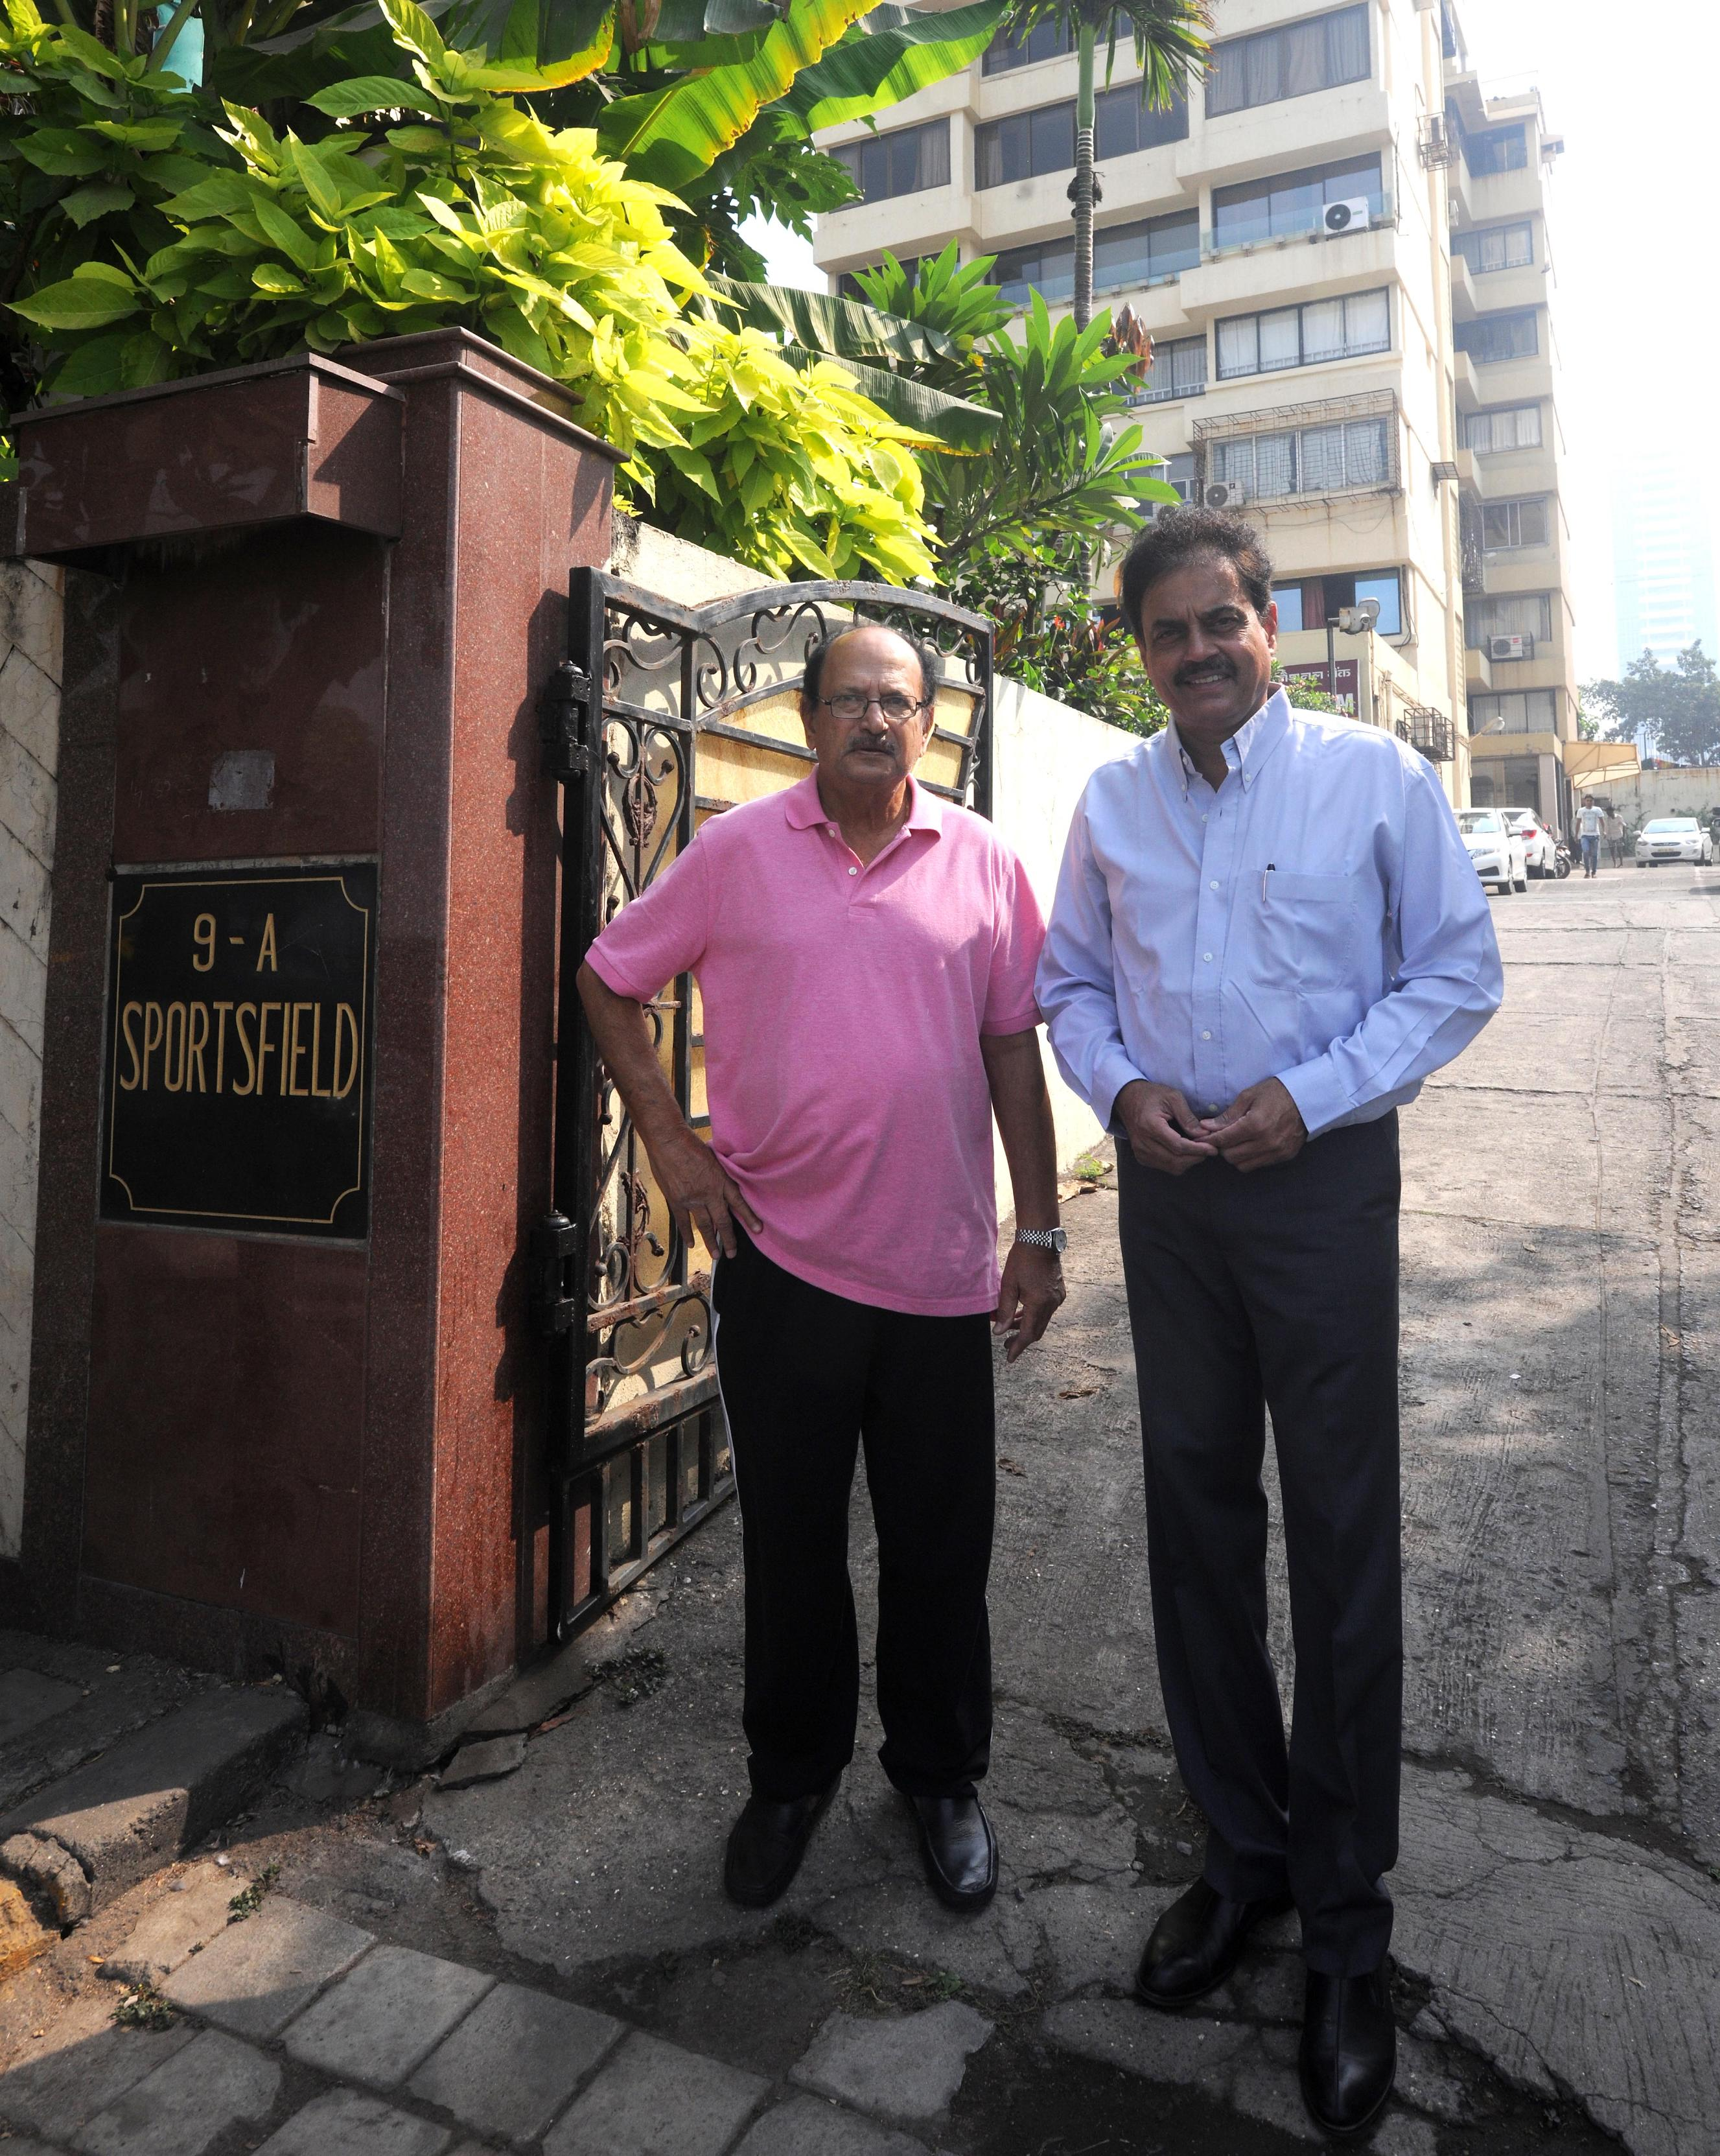 Ajit Wadekar and Dilip Vengsarkar: former Test captains and Sportsfield residents